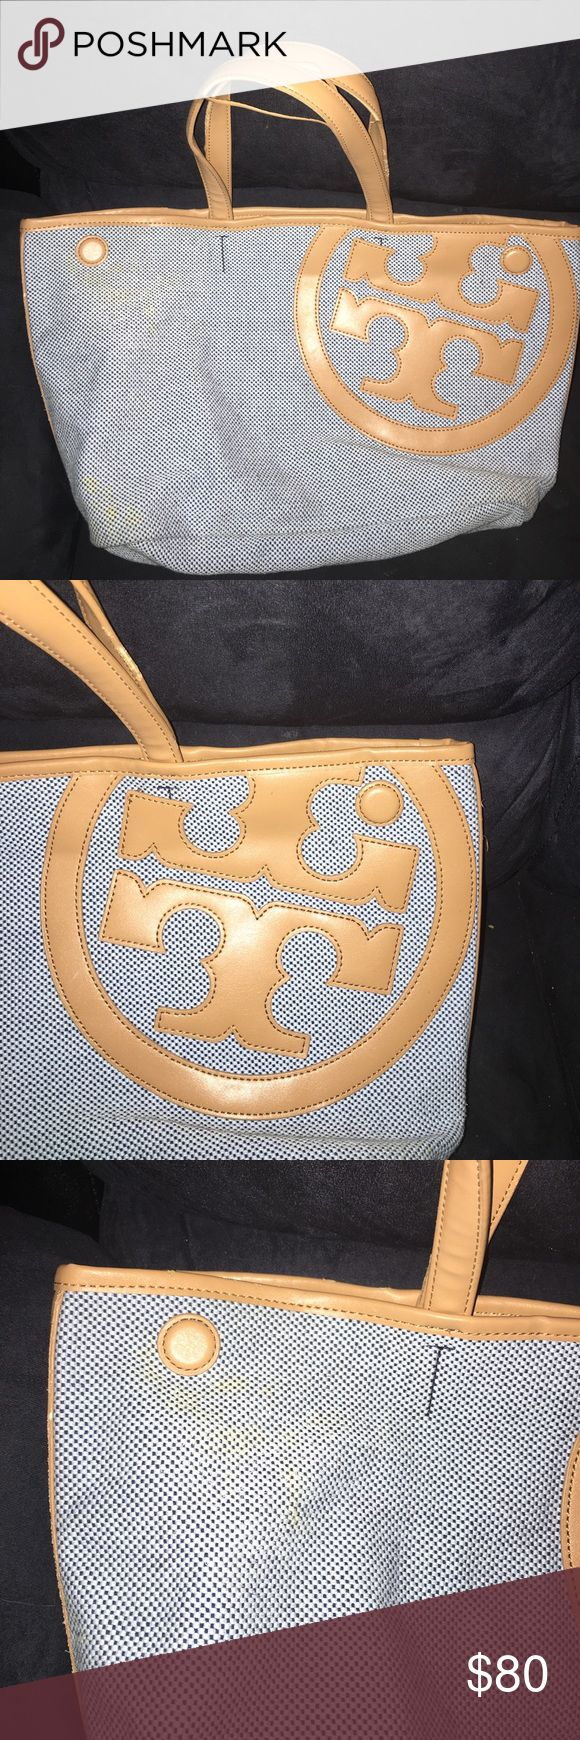 Tory Burch Small Tote In good condition. There is a small stain on the front that is so slight I couldn't get a good picture of it. A little Dawn, vinegar and a toothbrush should take care of it. The handles are stripping. Clean inside. Straps long enough for shoulder or carry as a tote the straps are a light tan color while the bag is a tweed in blue and white. Beautiful just too small for me. Tory Burch Bags Totes